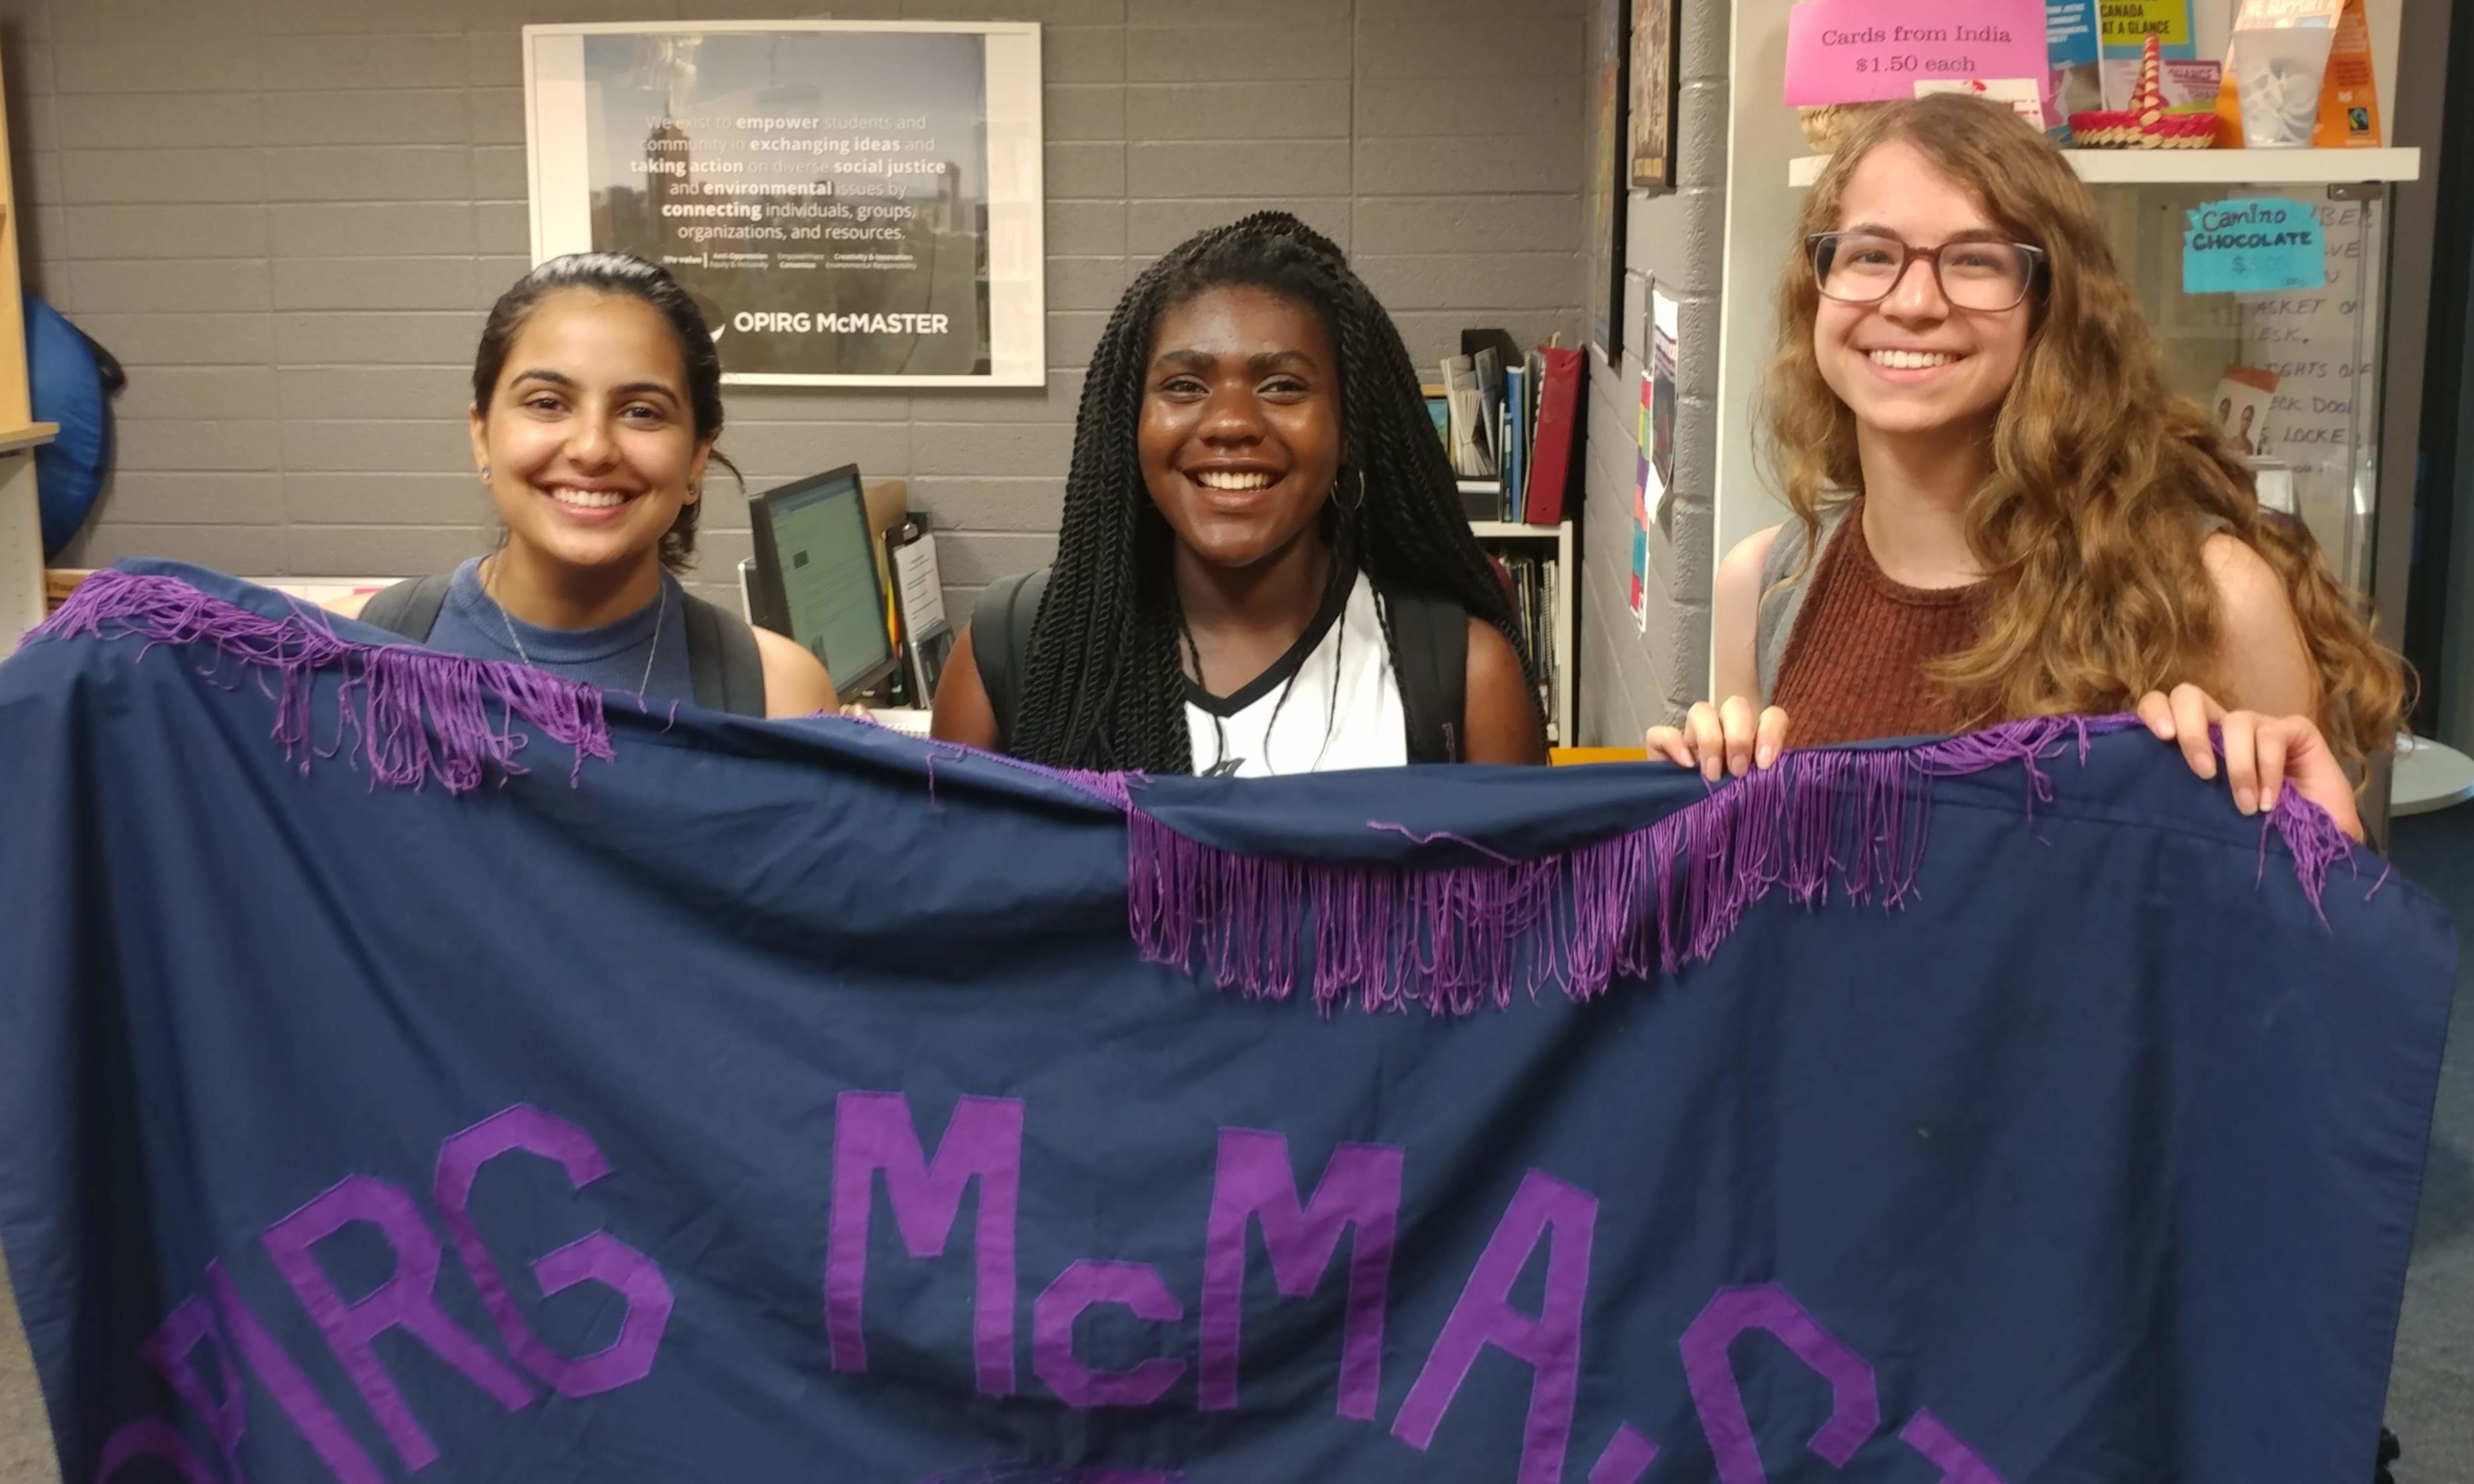 """Three students smiling and holding a purple and blue banner with """"OPIRG McMaster"""" on it."""